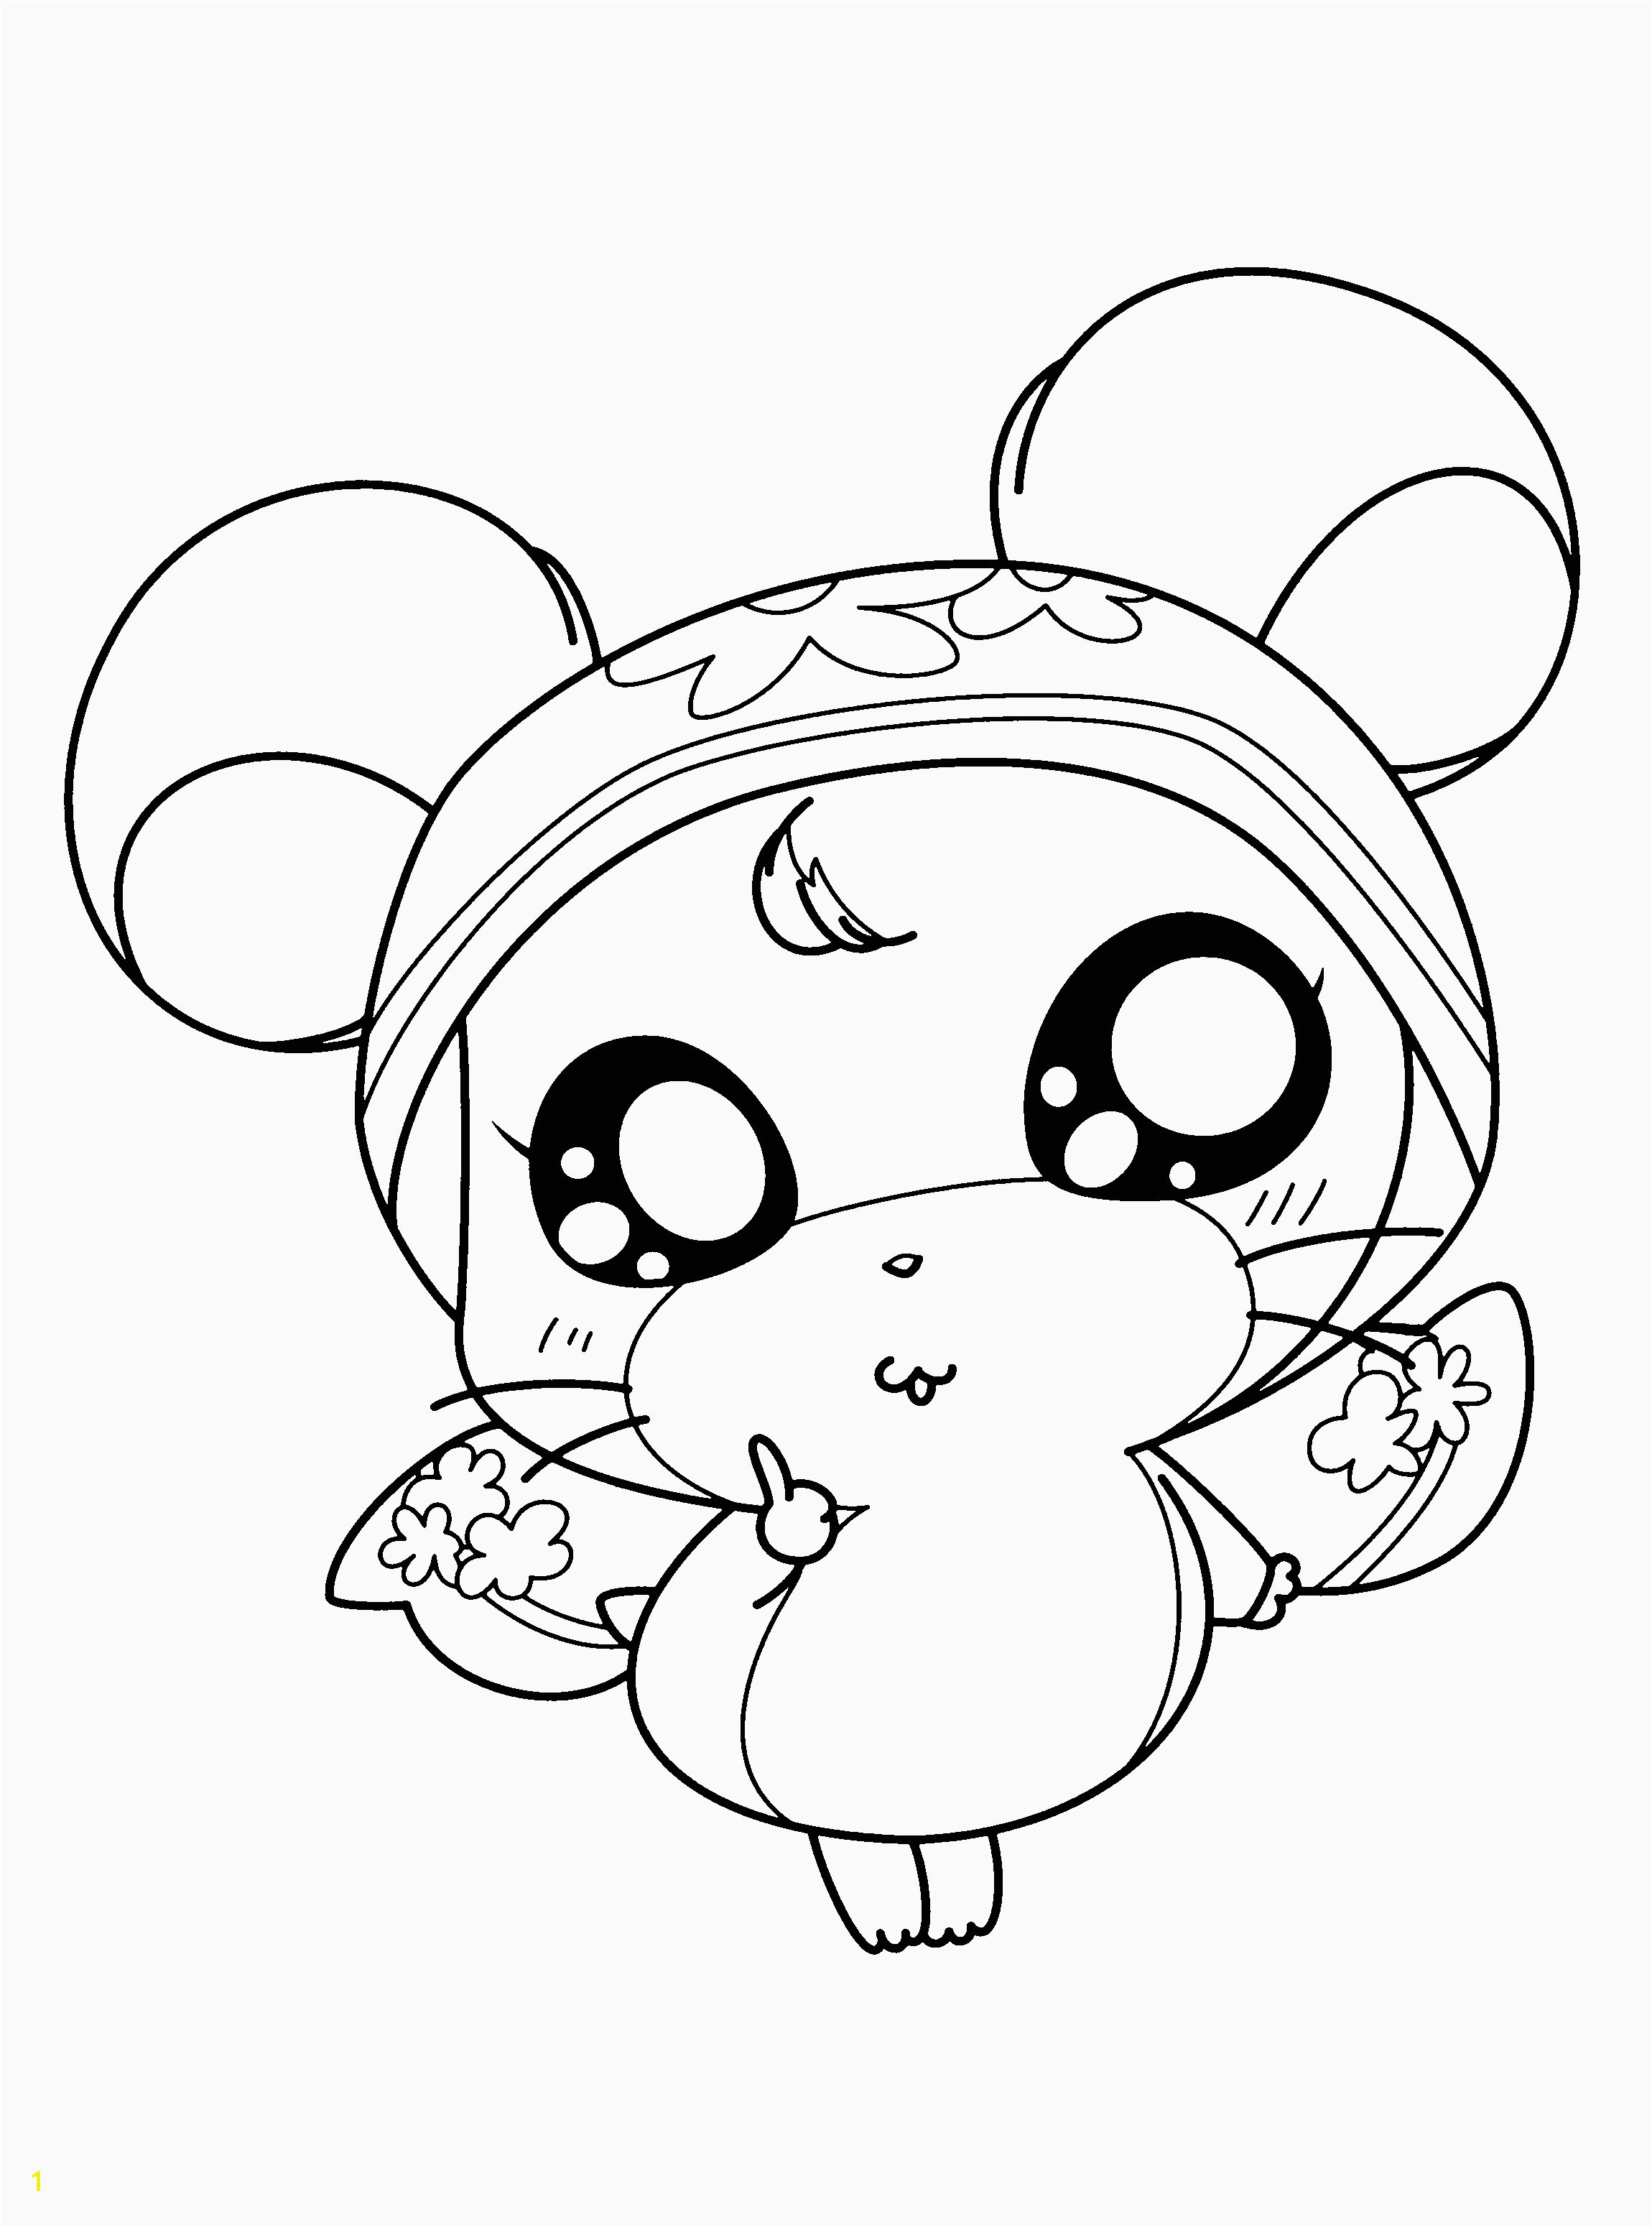 Cuties Coloring Pages Best Home Coloring Pages Best Color Sheet 0d – Modokom – Fun